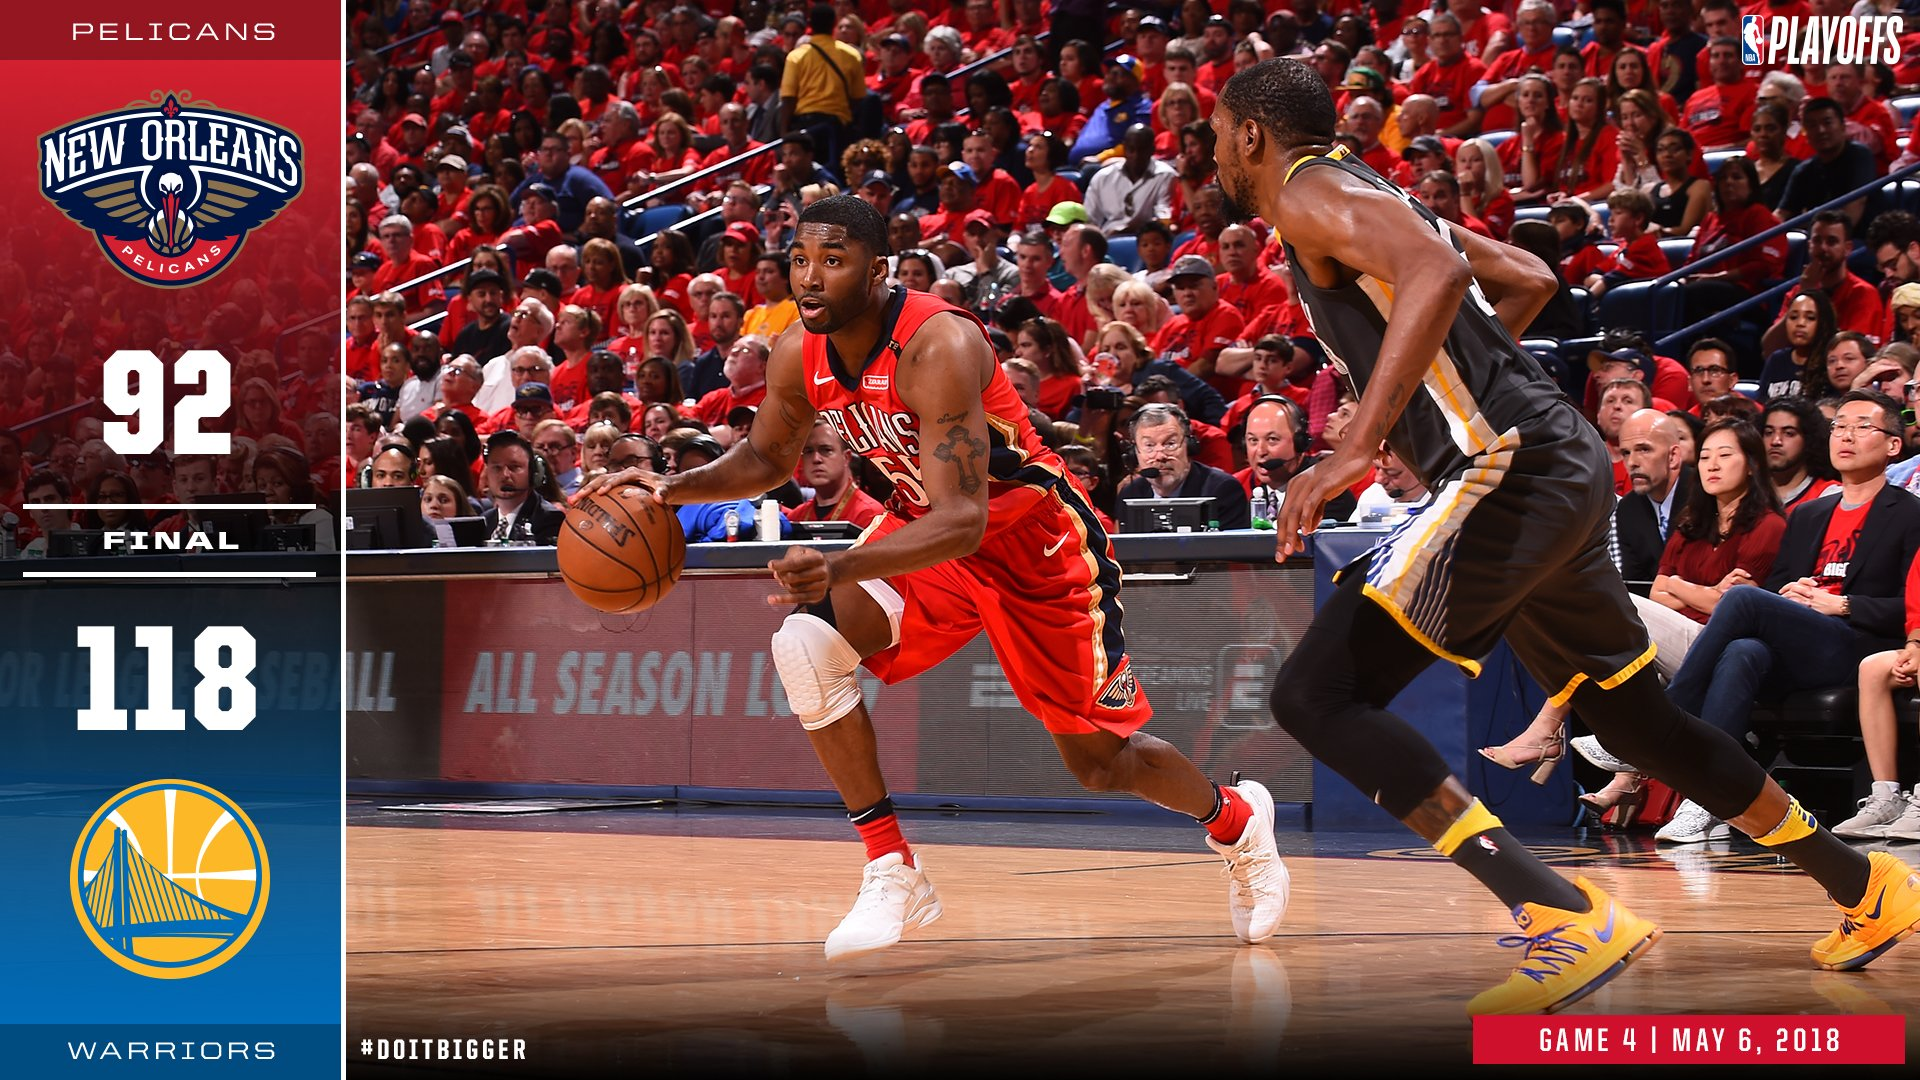 #Pelicans fall to Warriors in Game 4. https://t.co/9lJuN8ynYX